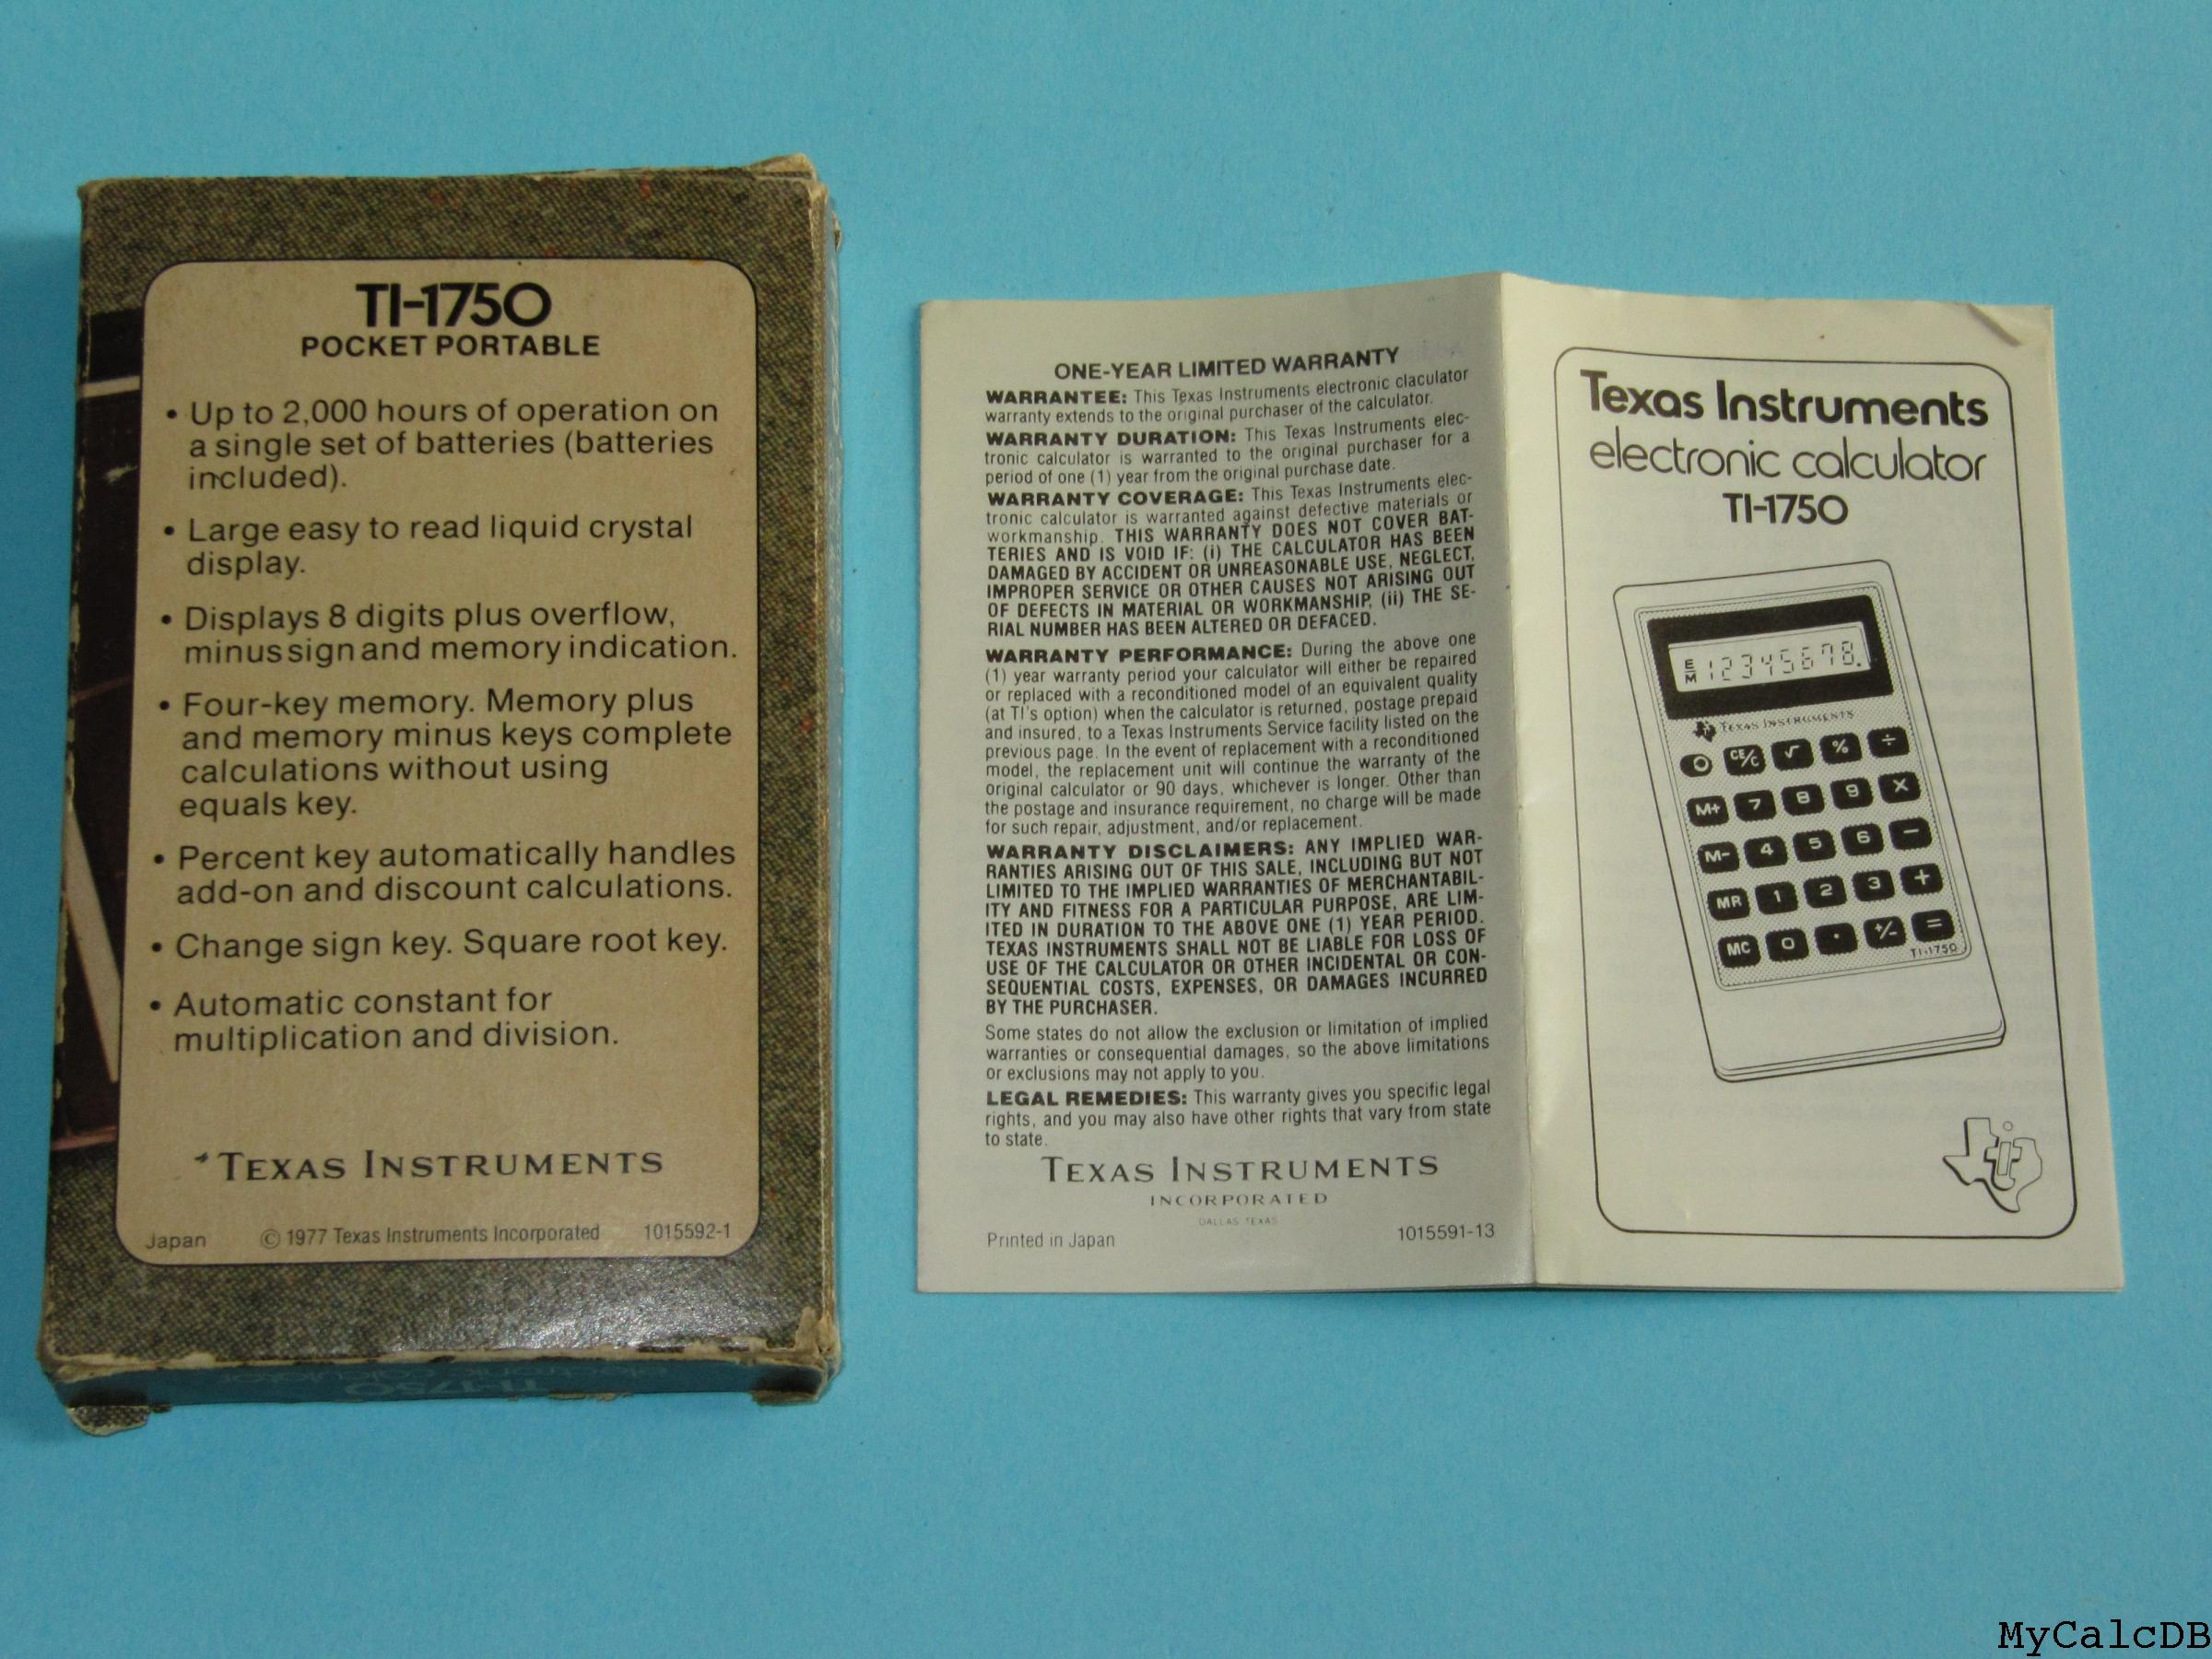 Texas Instruments TI-1750